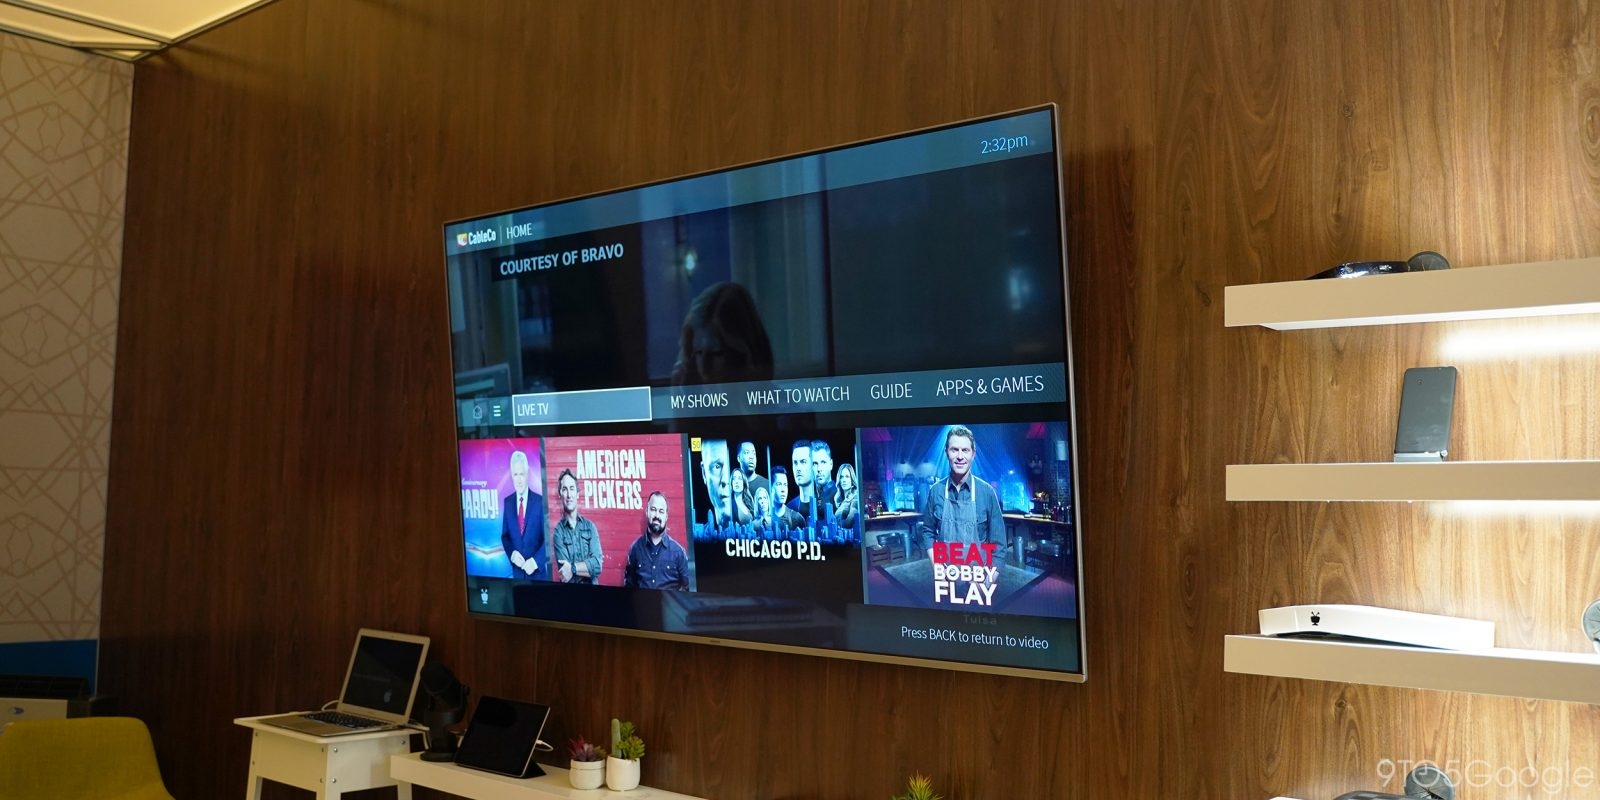 Here's what TiVo is doing with Google's Android TV - 9to5Google